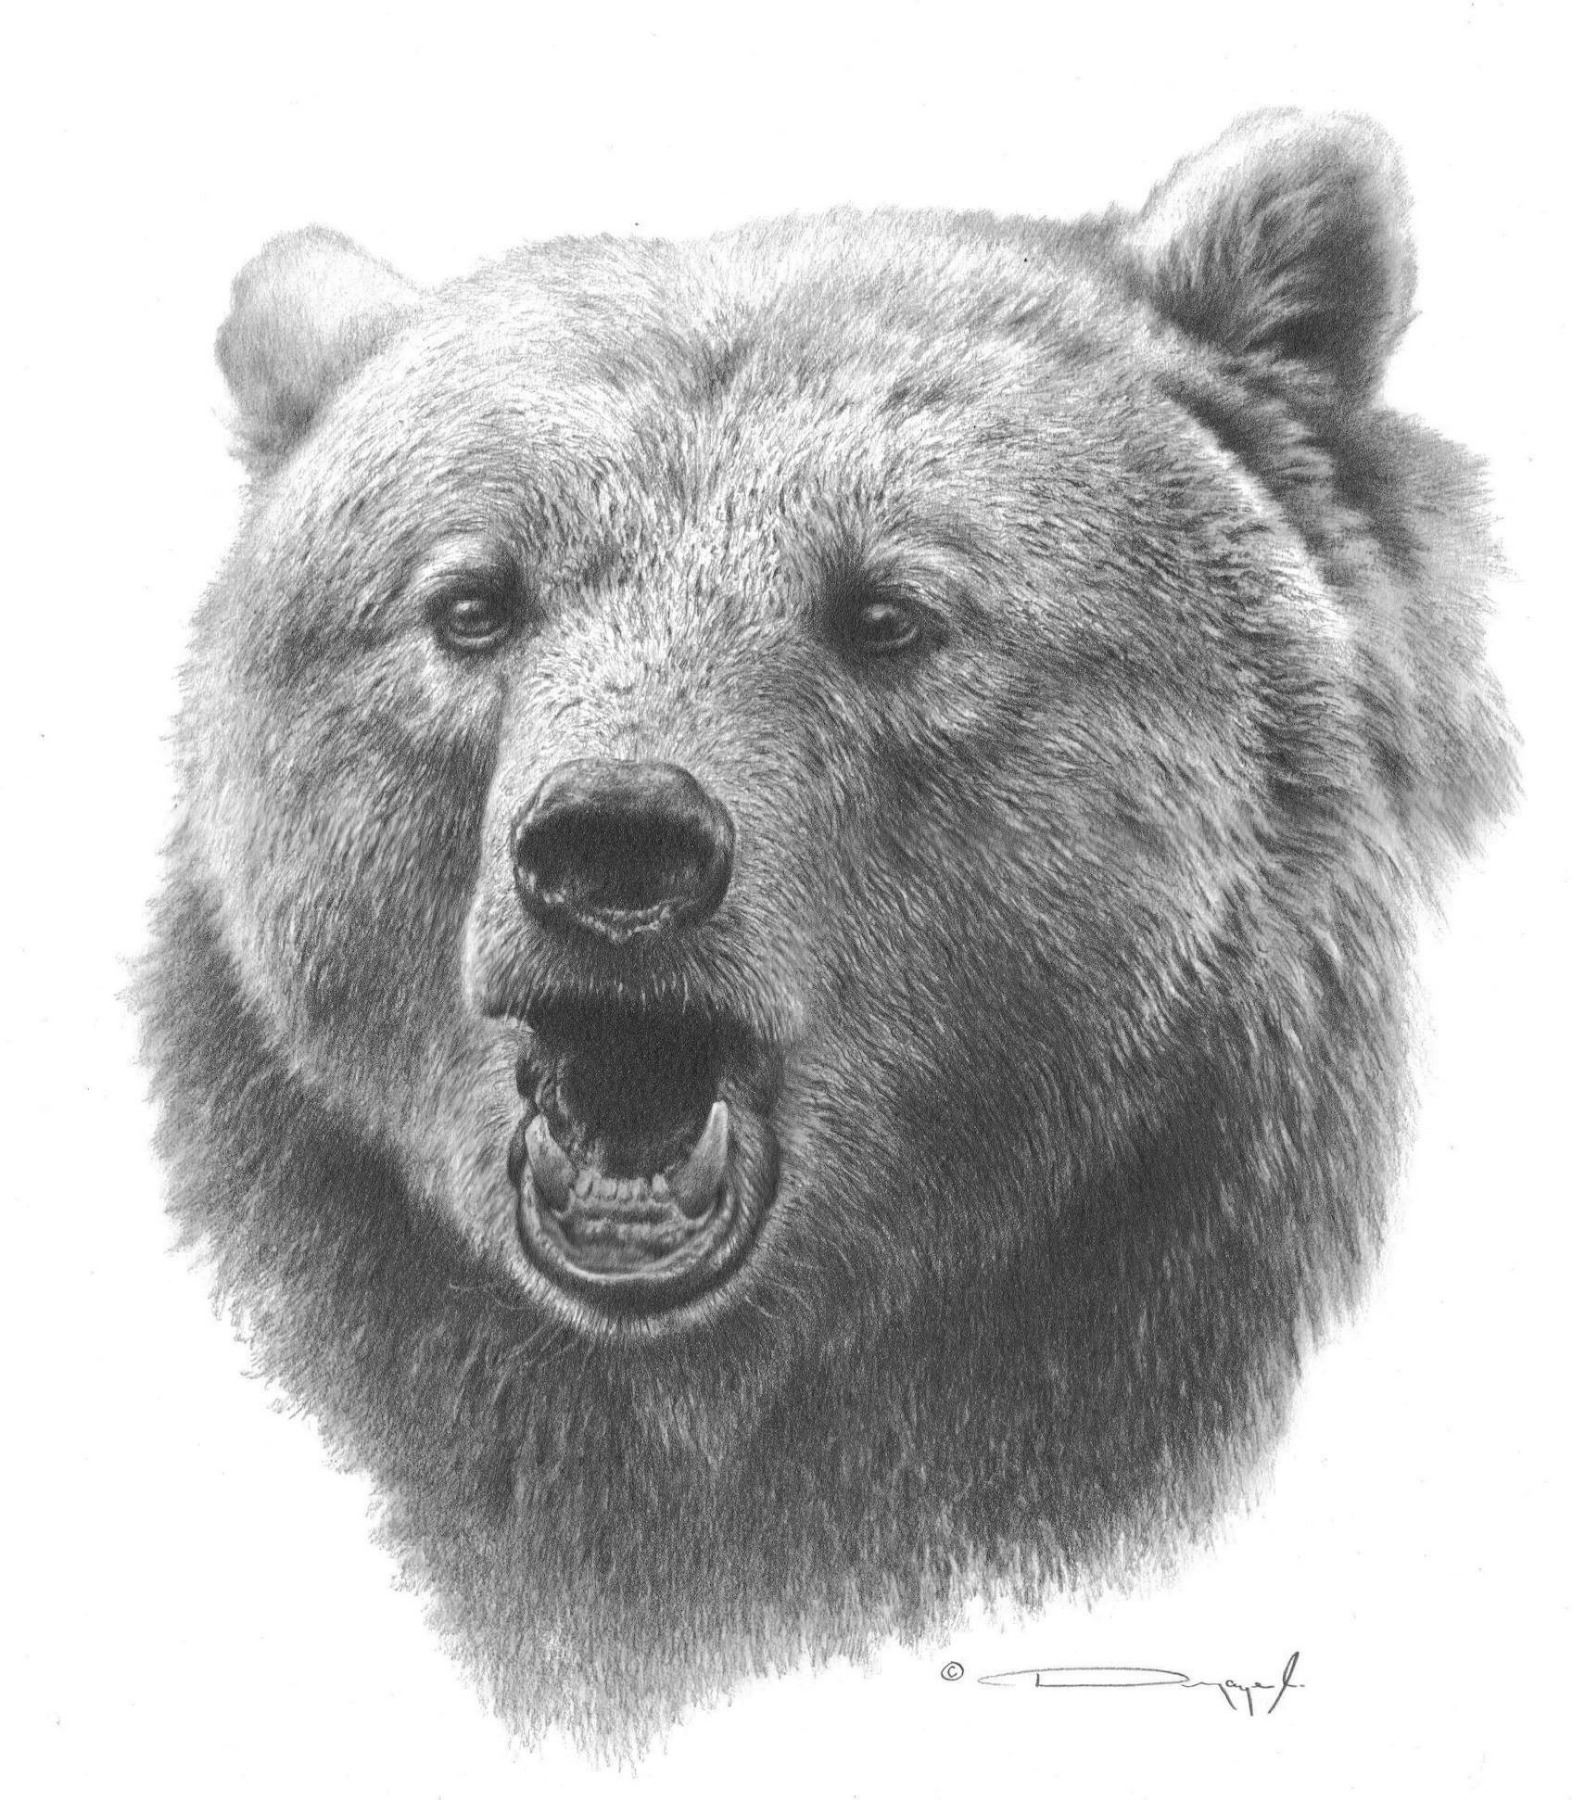 how to draw a grizzly bear face grizzly bear original pencil drawing by dennis mayer jr to grizzly draw face bear how a